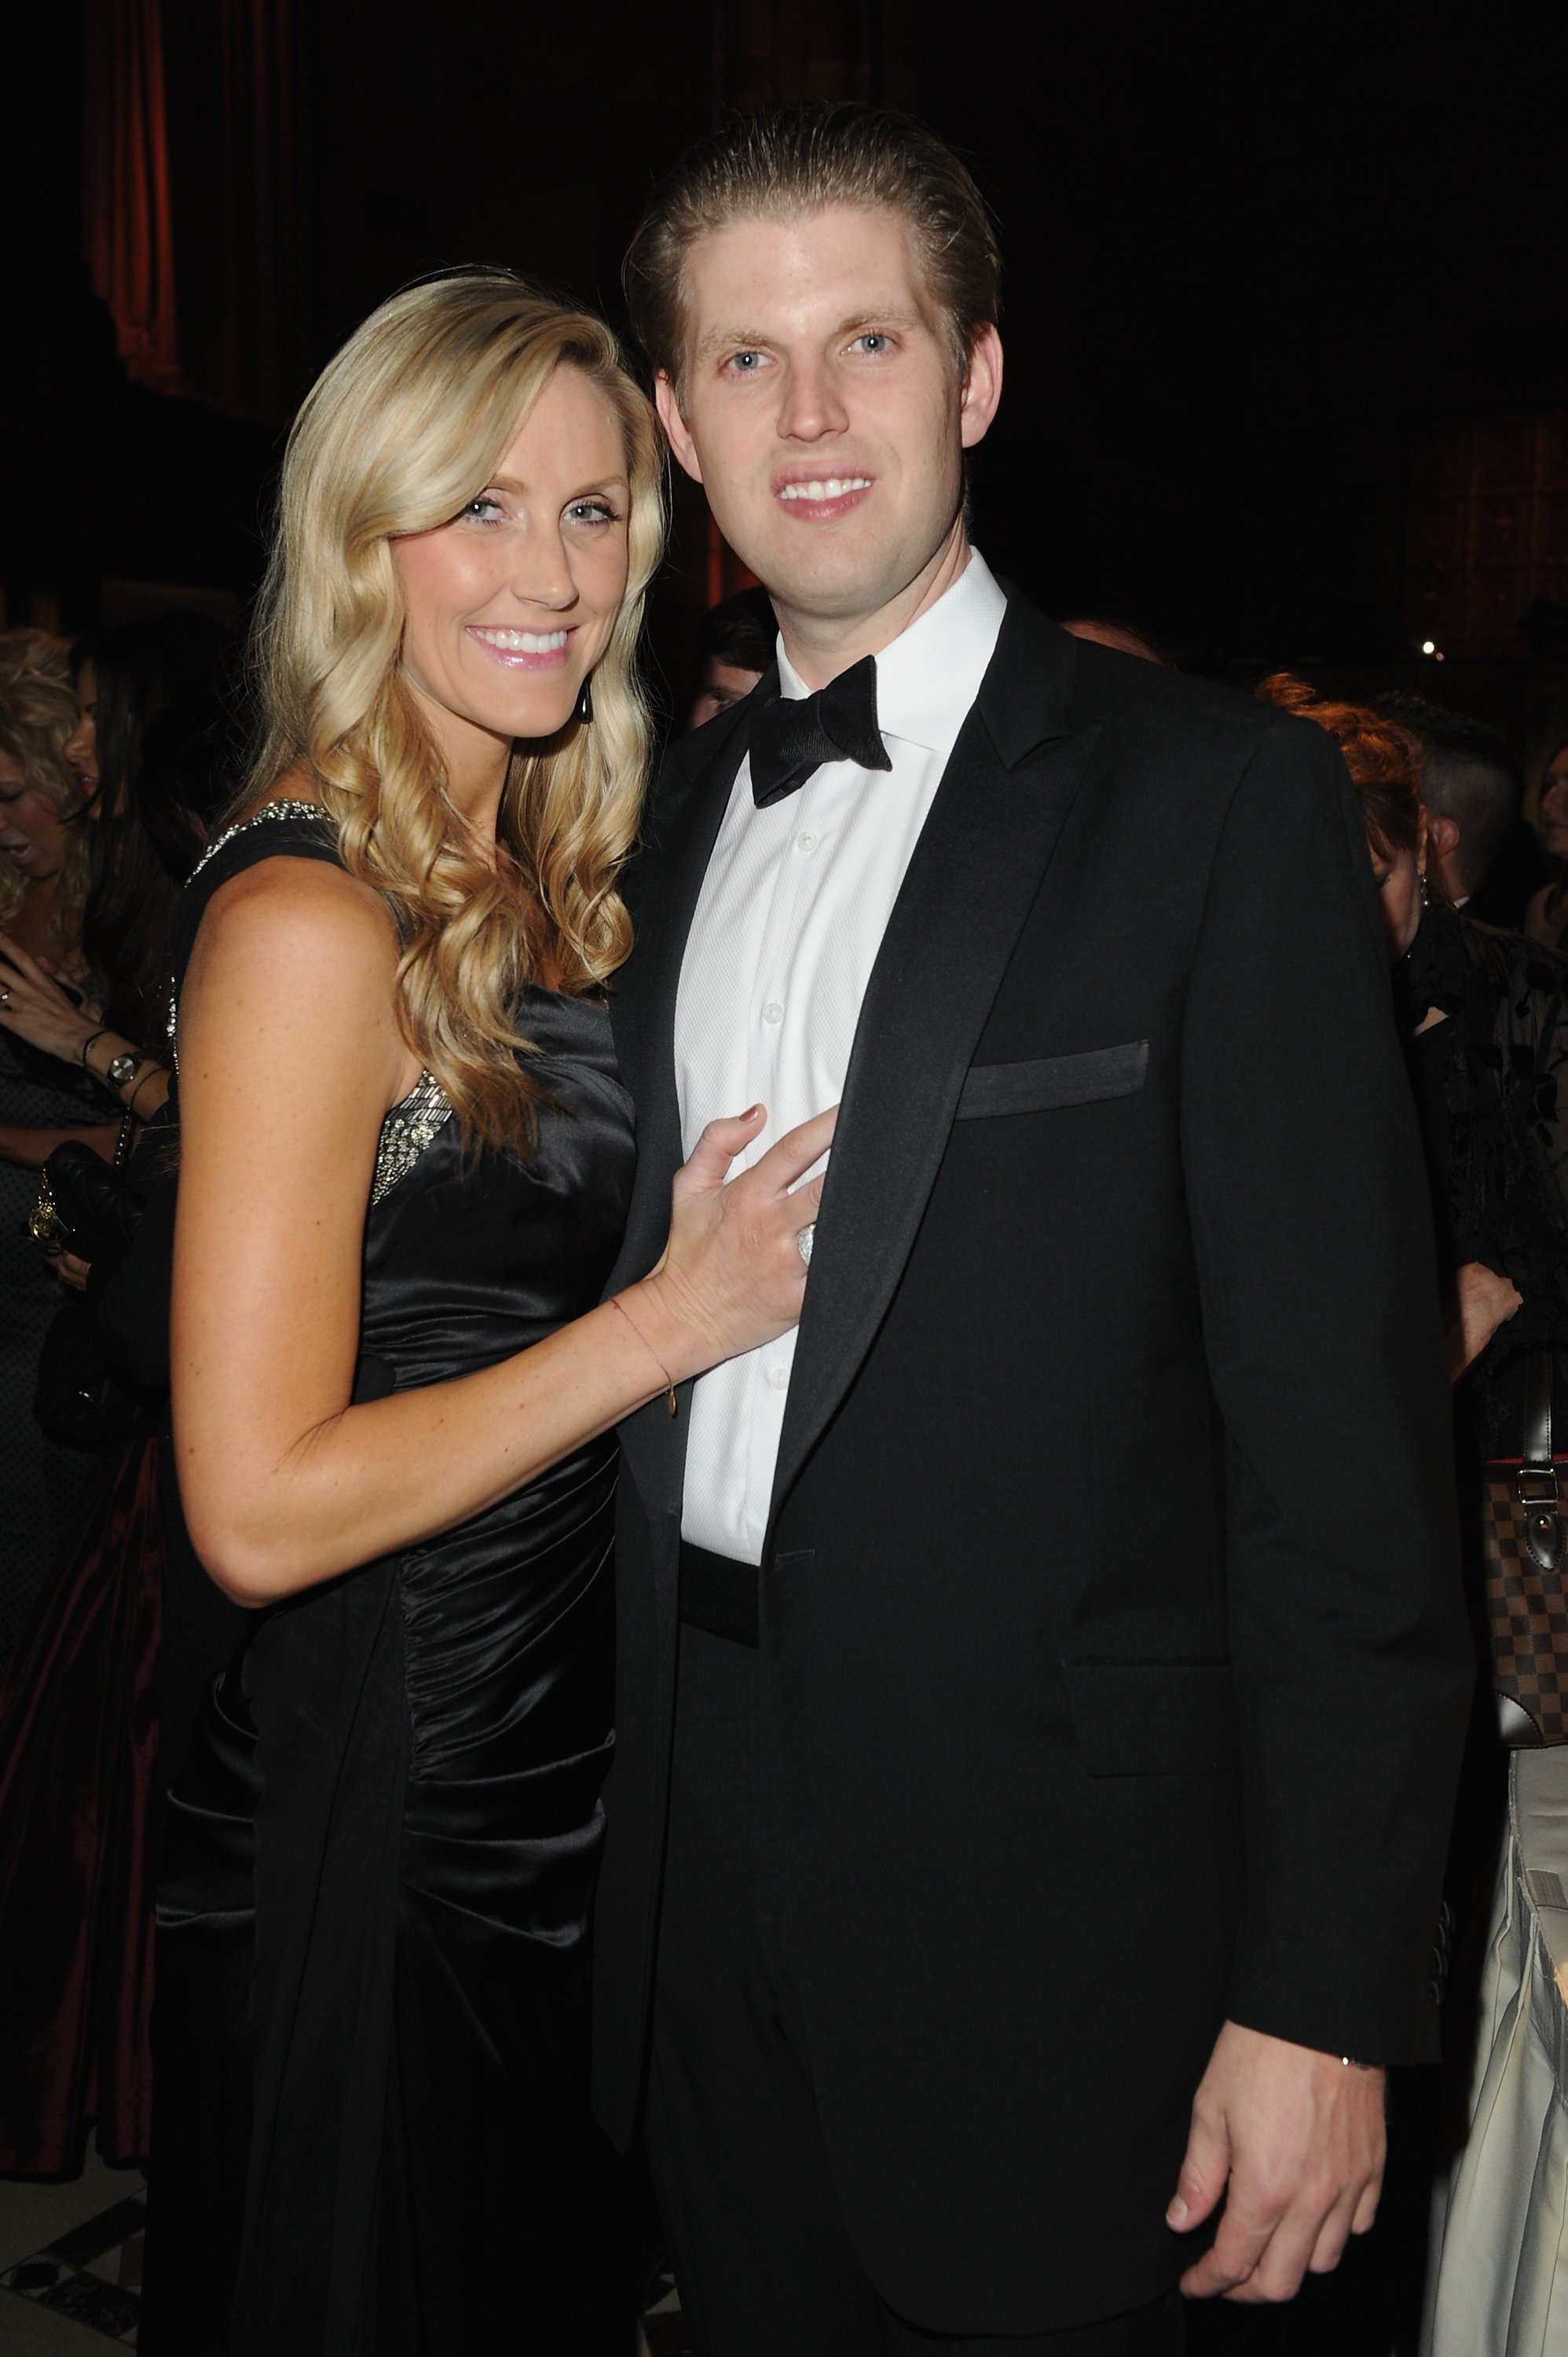 Lara Yunaska and Eric Trump attend European School Of Economics Foundation Vision And Reality Awards on December 5, 2012 in New York City | Photo: GettyImages